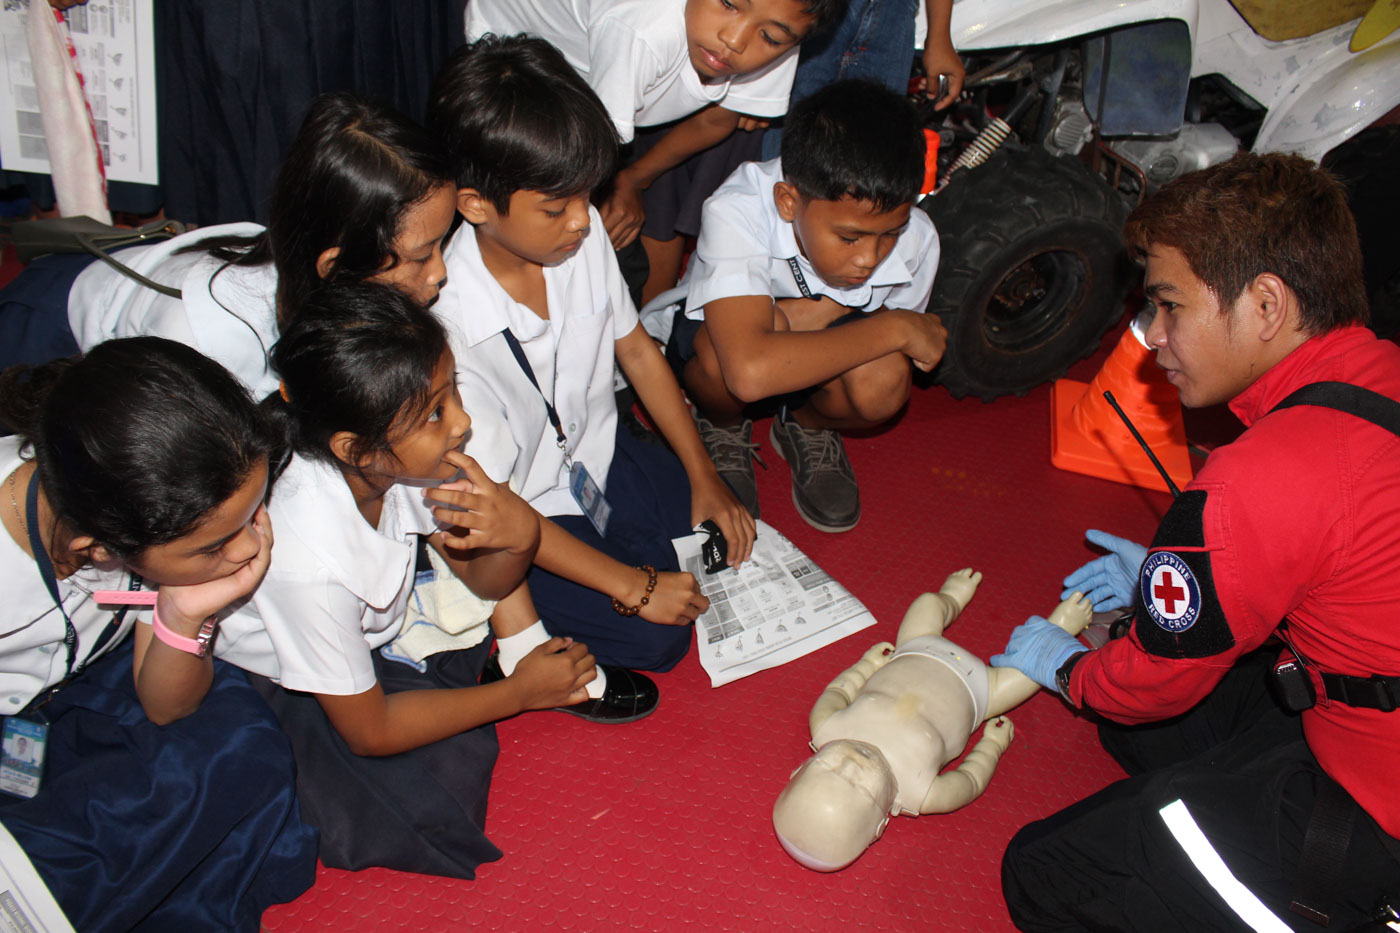 TRAINING. A representative from the Office of Civil Defense Bicol demonstrates to pupils at the Bacacay East Central School in Albay how to administer first aid. Photo by Rhaydz Barcia/Rappler